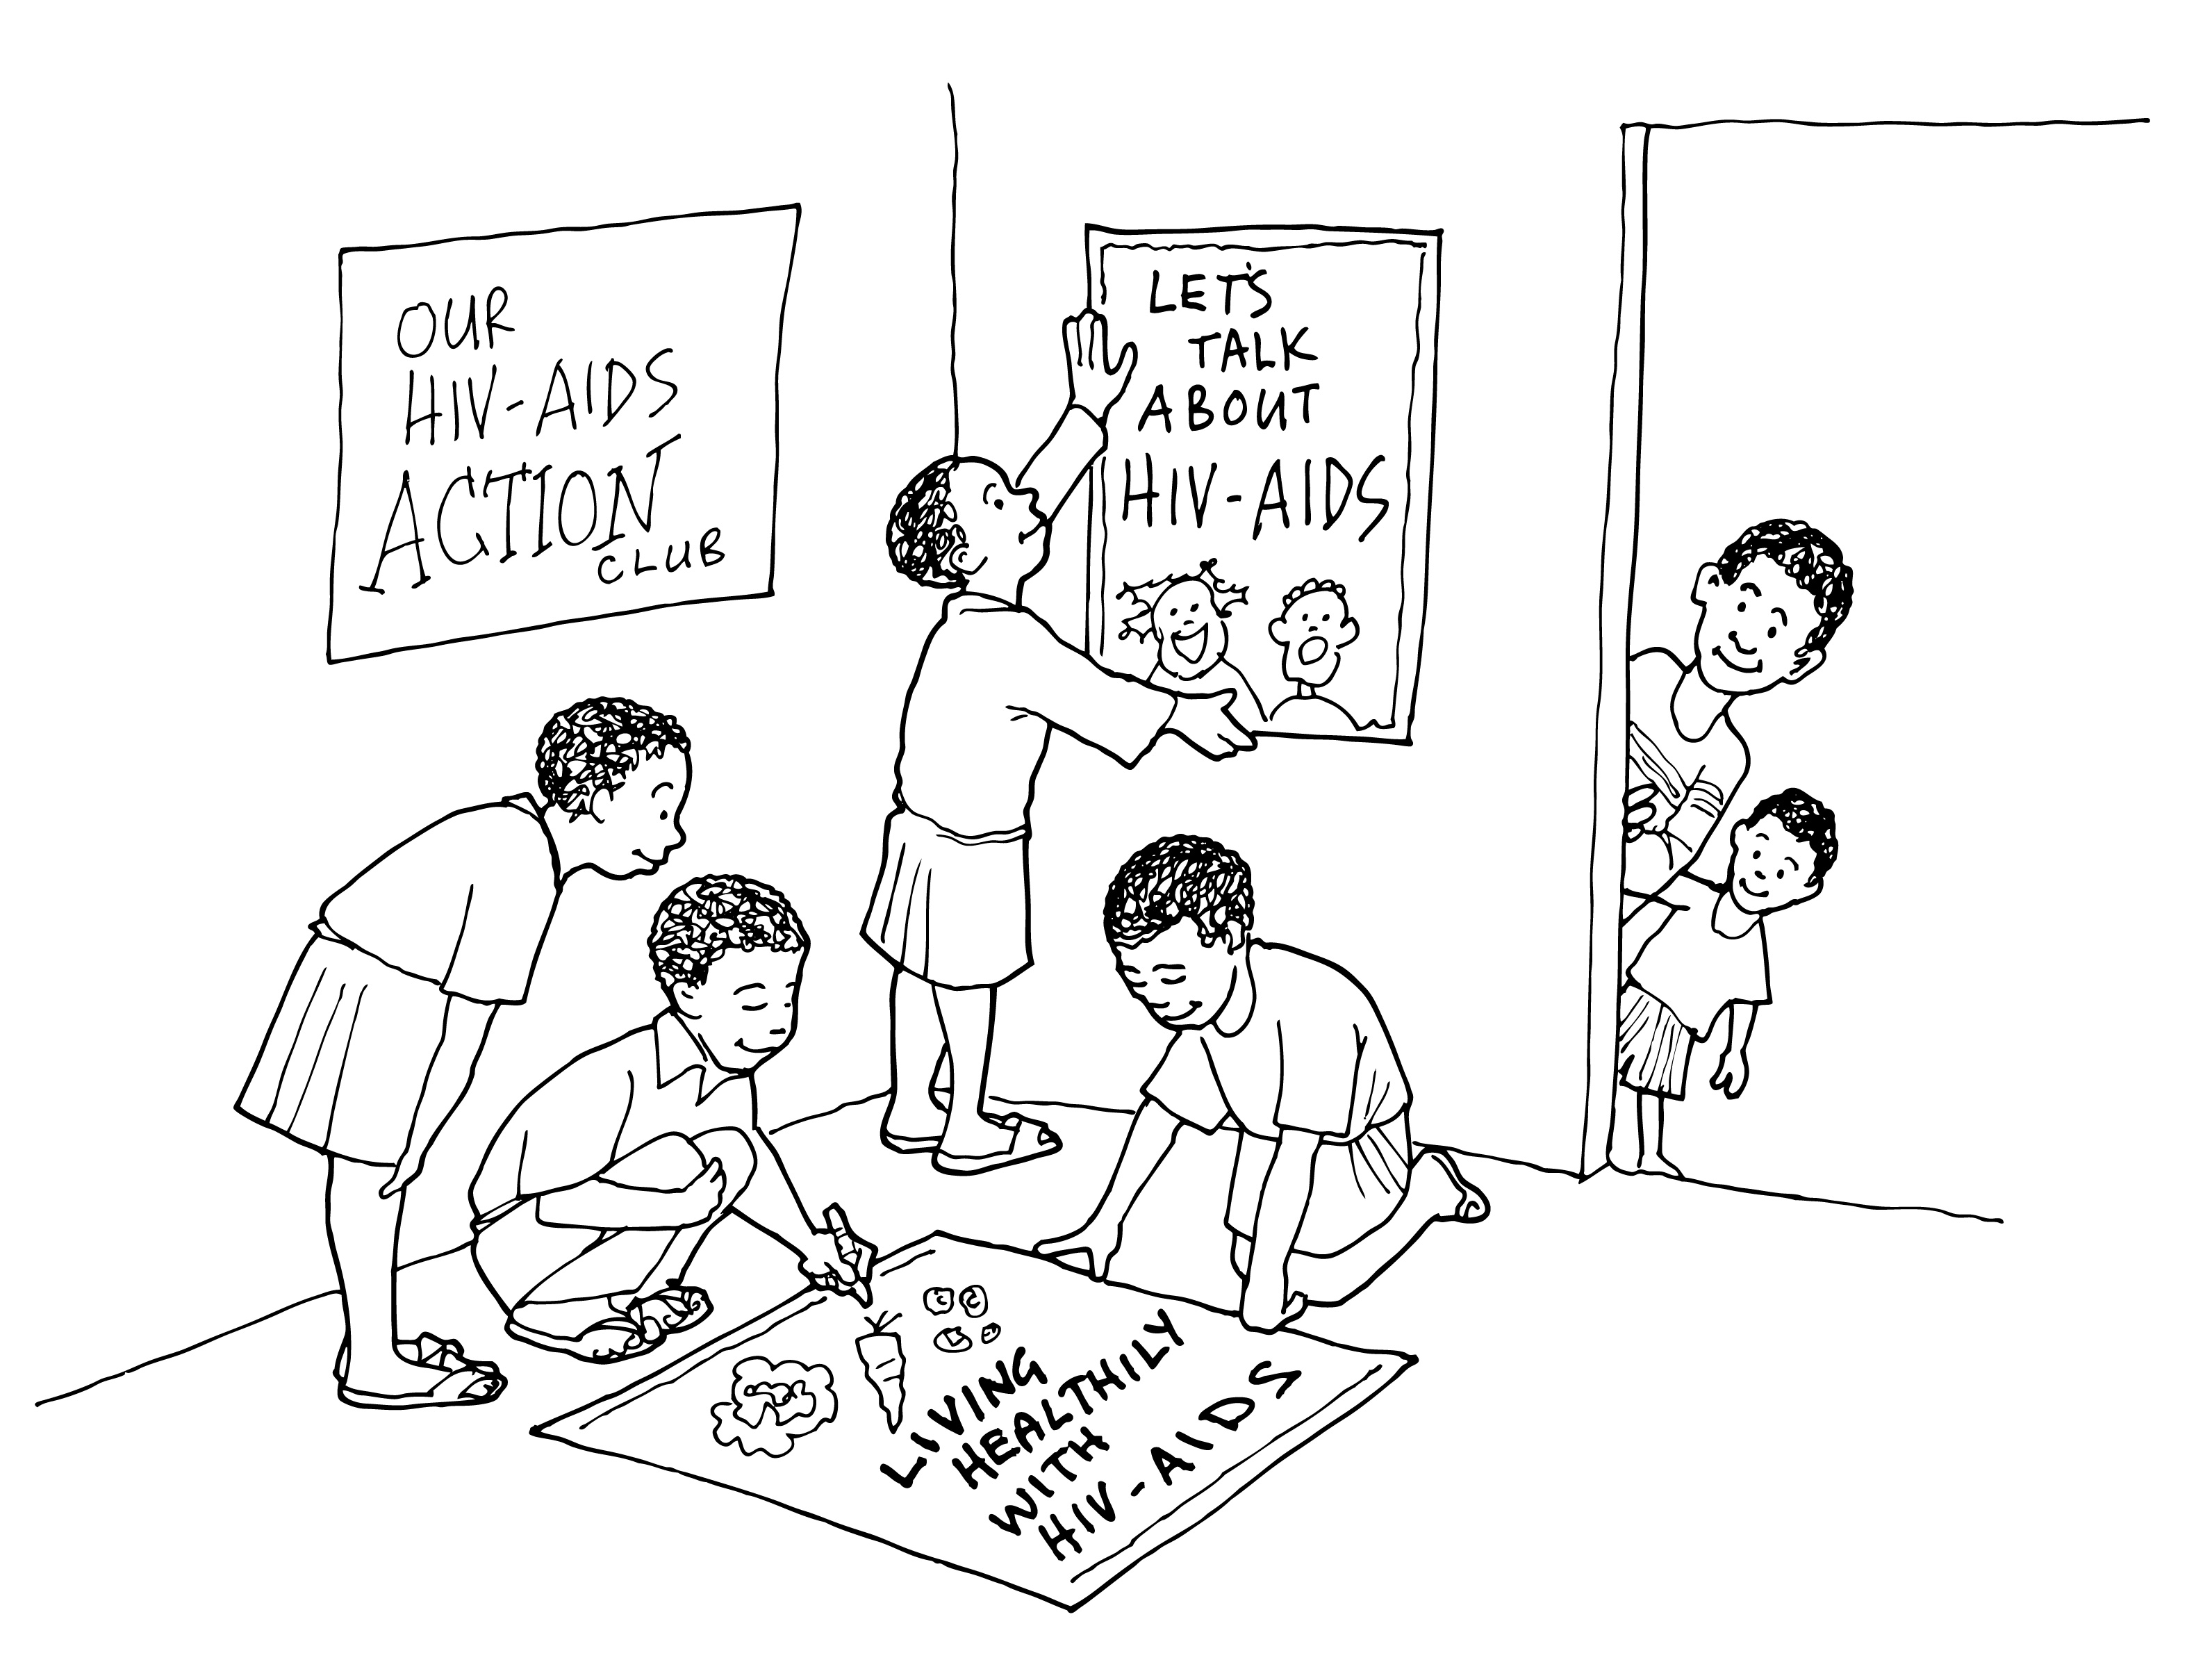 hivaids_action